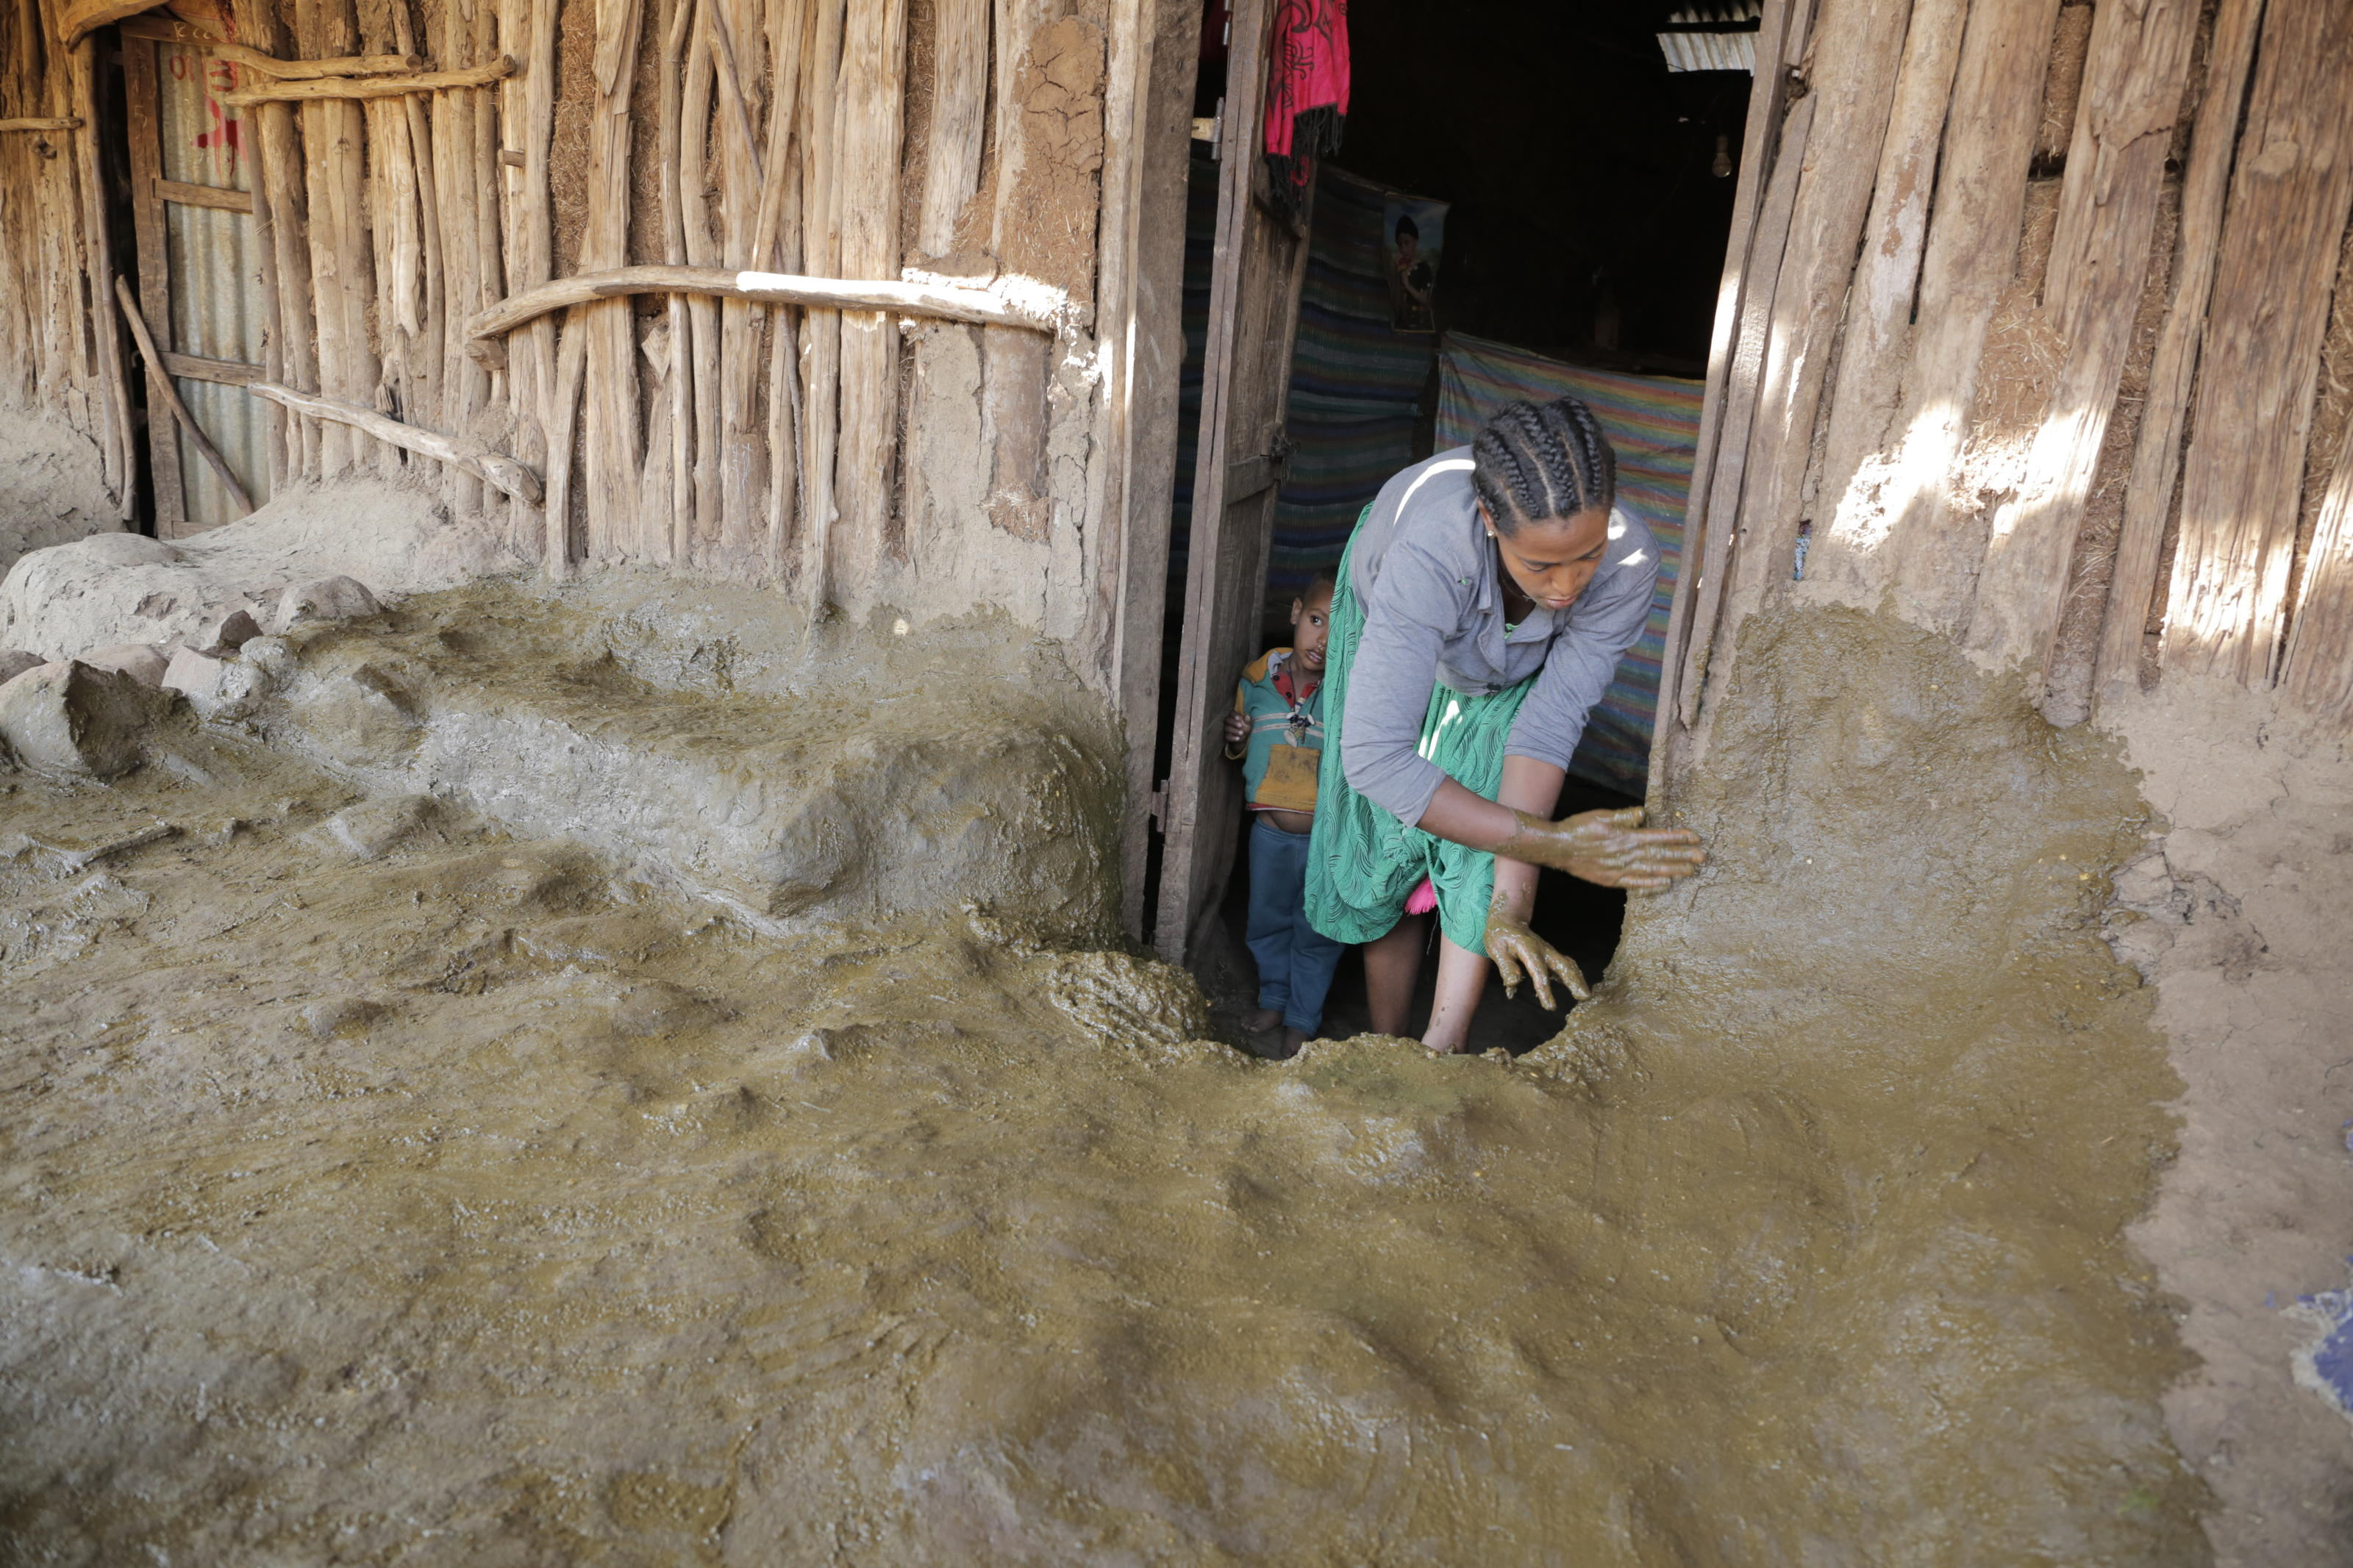 POLISHING THE FLOOR WITH COW DUNG: In Ethiopia, people use cow dung to polish the walls and floors of their houses as part of a house cleaning new year tradition to banish dust, illness and fleas and to bring good health for the coming year. Senede po ...